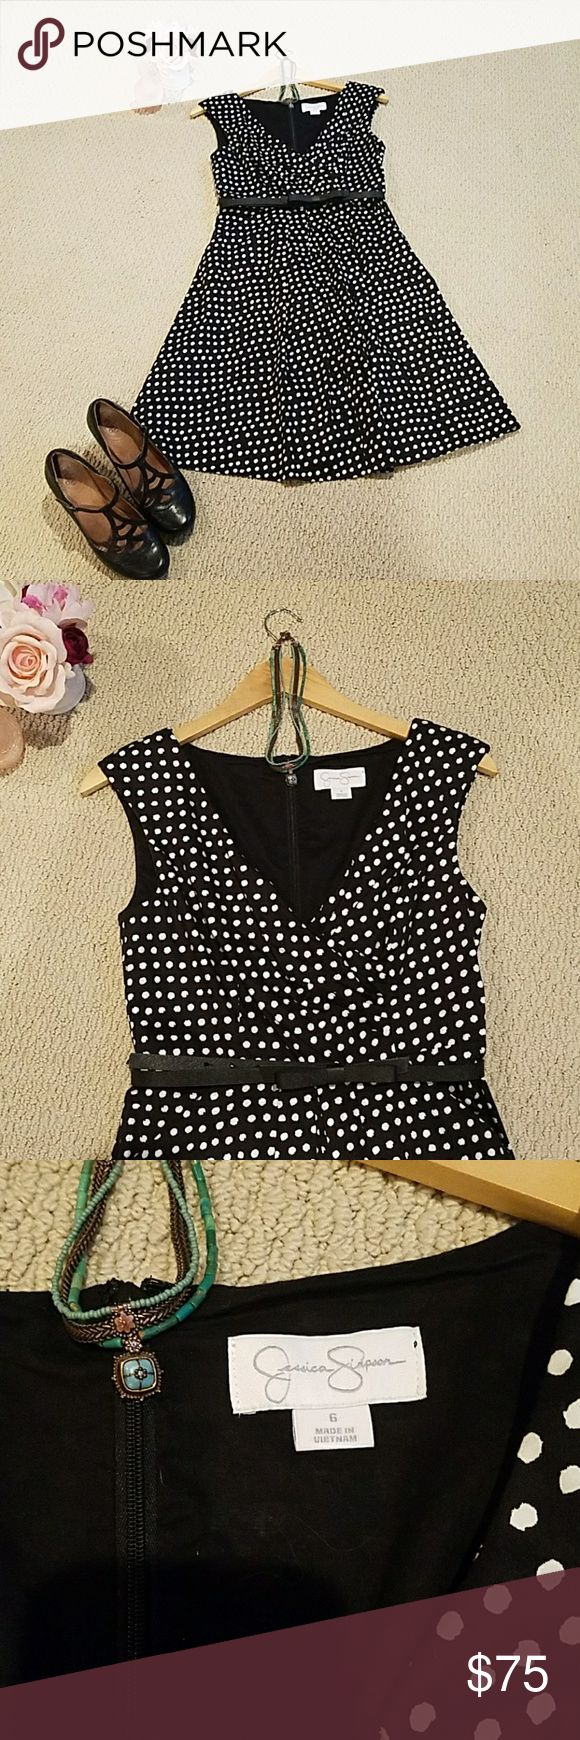 """Jessica Simpson Dress Lovely, ladylike A-line polka dot dress with pockets. So on trend! Size 6. Back zip. Length 37"""" from shoulder to hem. Waist 28"""" Bust 31"""". Excellent condition. Worn only a couple times. Original belt did not match the quality of the dress, so I used others. 💋all accessories are excluded, for styling only💋Dress up with heels, down with flats. You will love it! Jessica Simpson Dresses"""